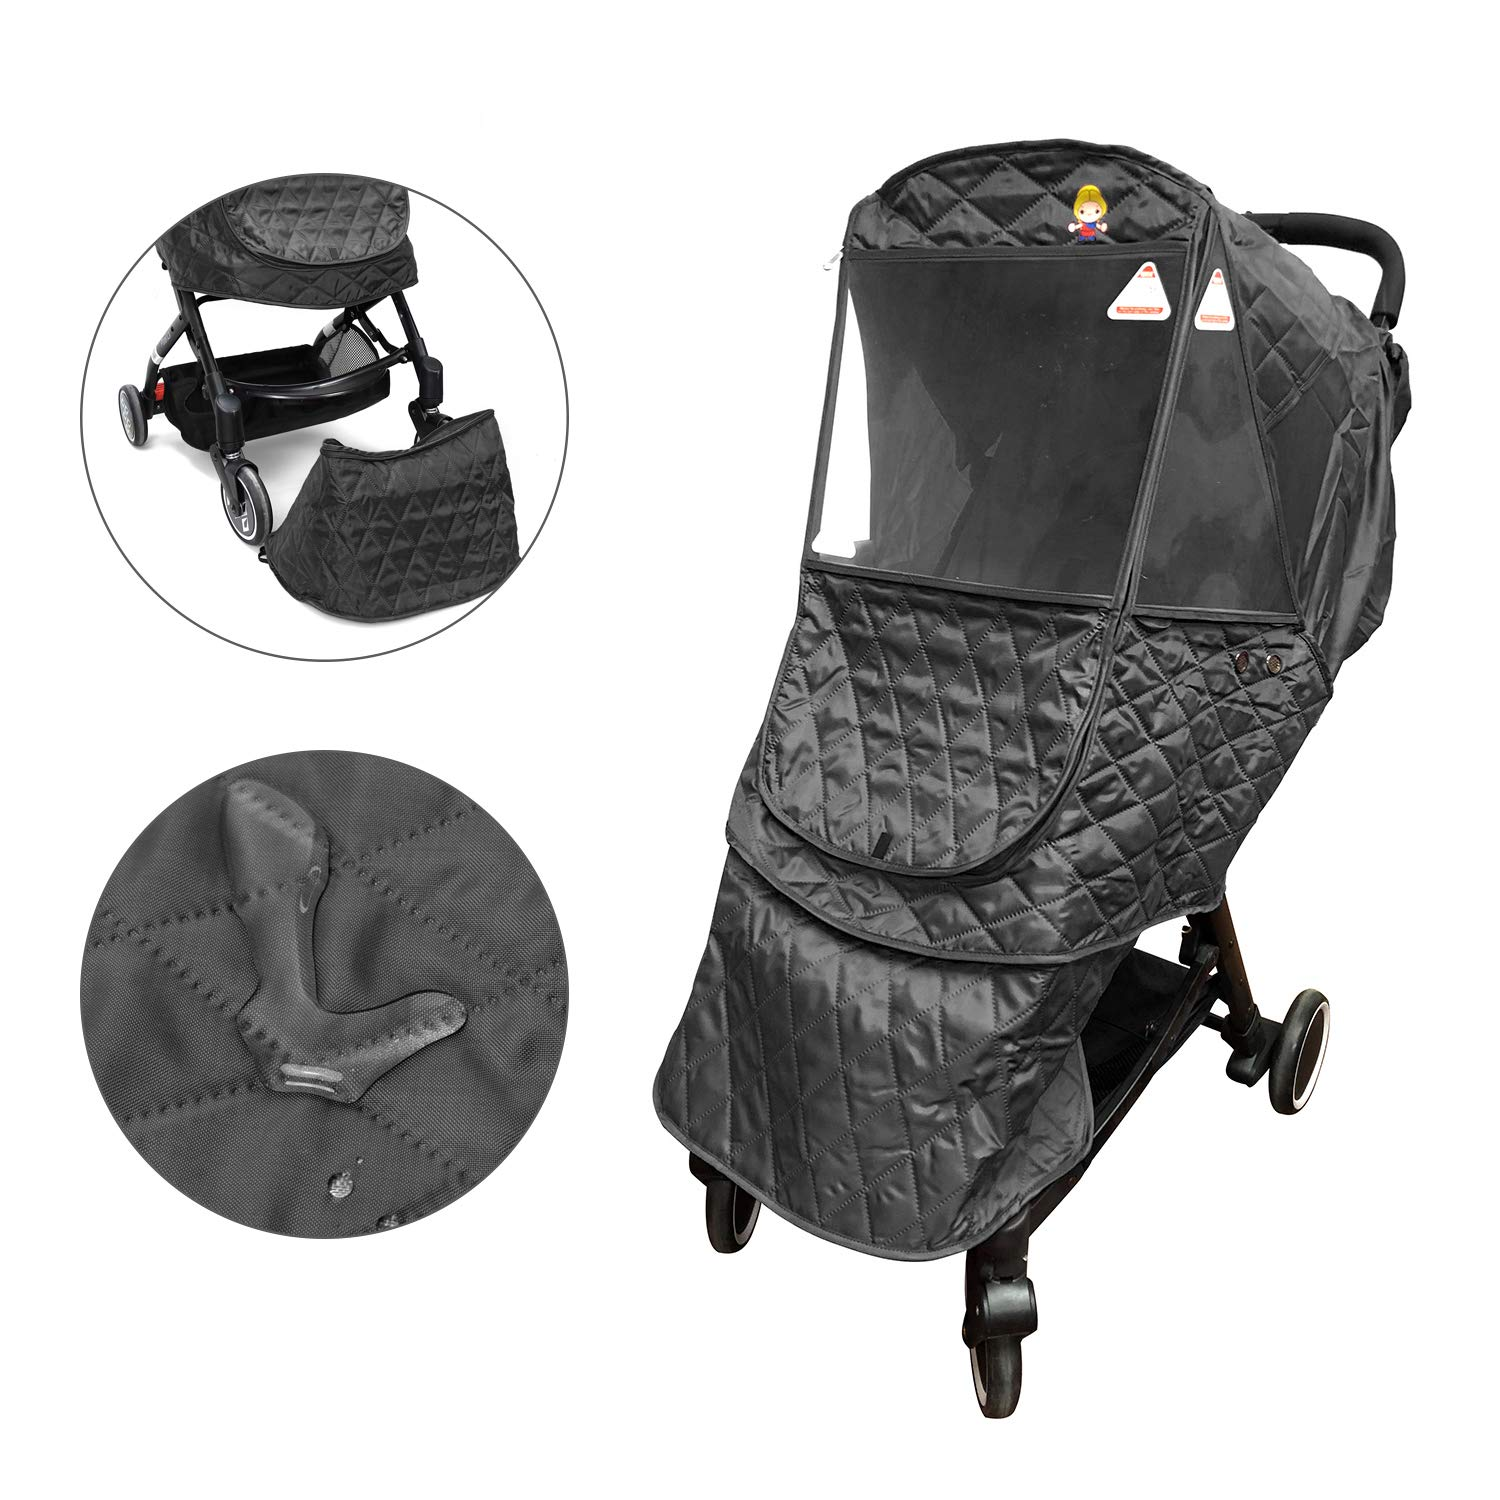 Wonder buggy Universal Stroller Weather Shield Rain Cover, Waterproof Snow Cover, Cotton Warm Protection, Travel-Friendly, Outdoor Use, Easy to Install and Remove, Black